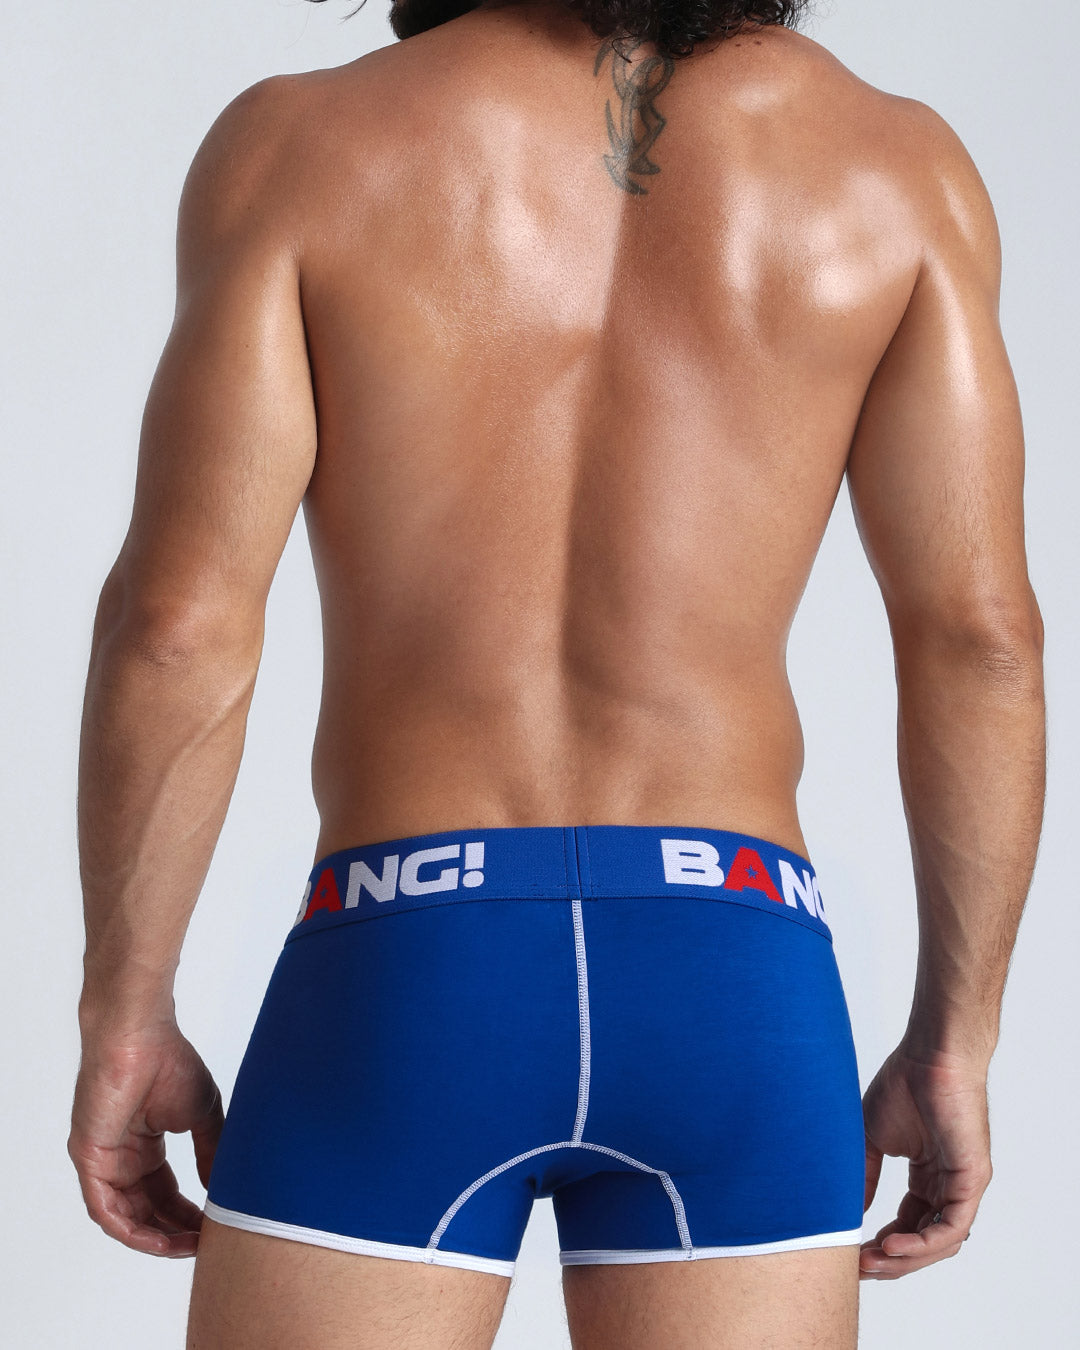 Frontal view of a fit man wearing men's premium cotton boxer brief in blue by the Bang! men's underwear brand from Miami. Frontal view of a fit man wearing men's premium cotton boxer brief in blue by the Bang! men's underwear brand from Miami.